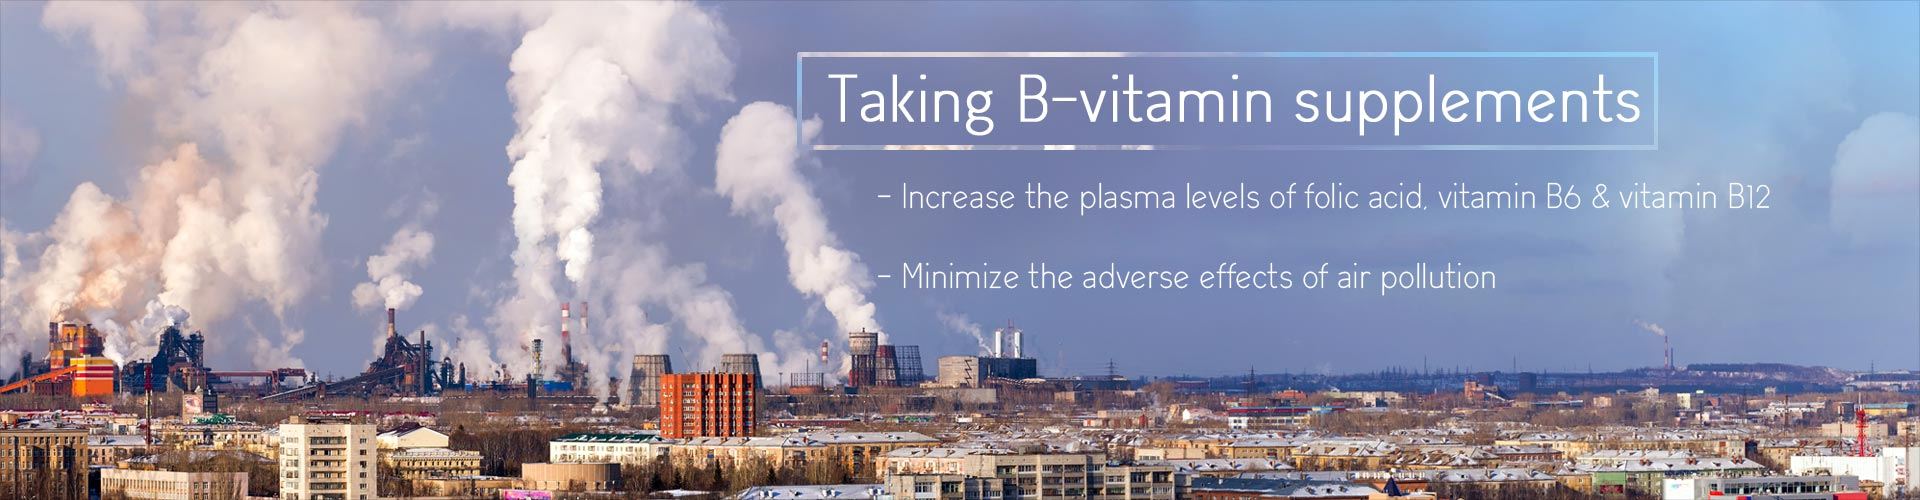 B Vitamin Supplements May Reduce Harmful Effects of Air Pollution